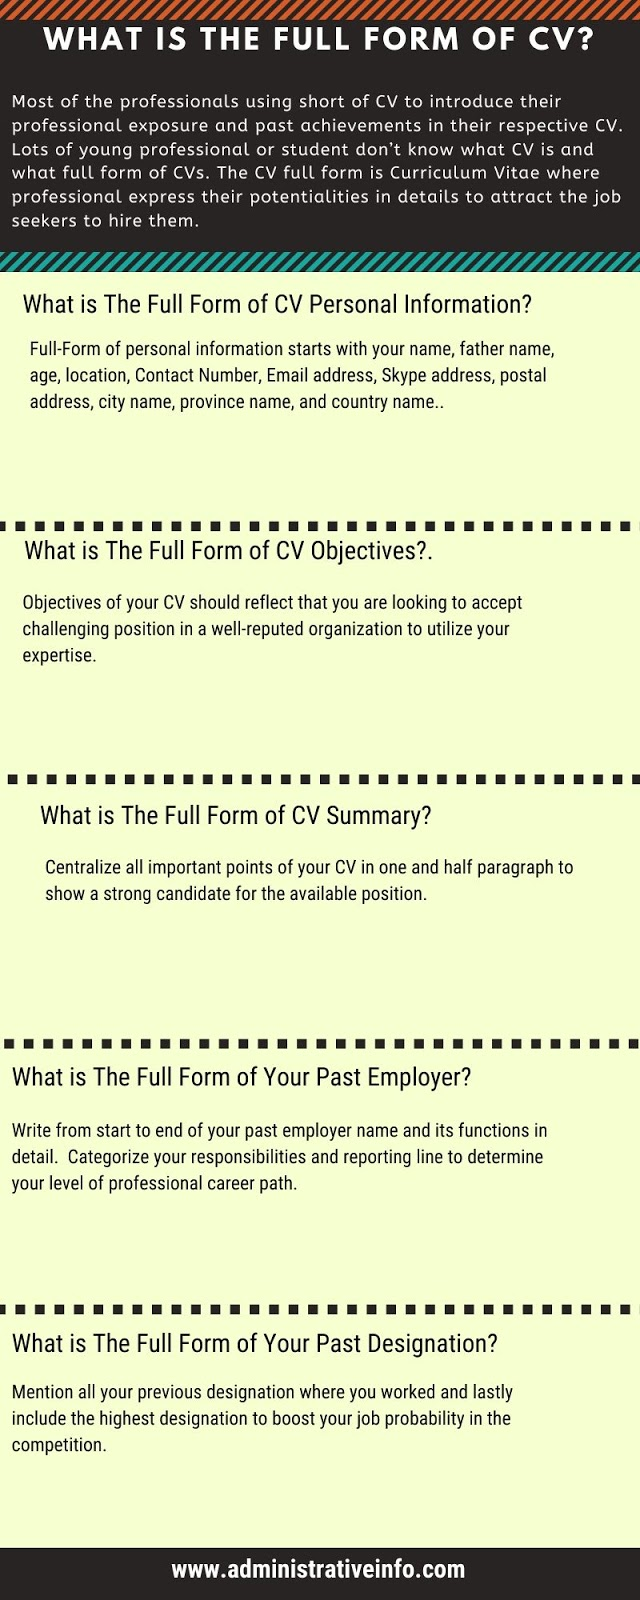 What Is The Full Form of CV?